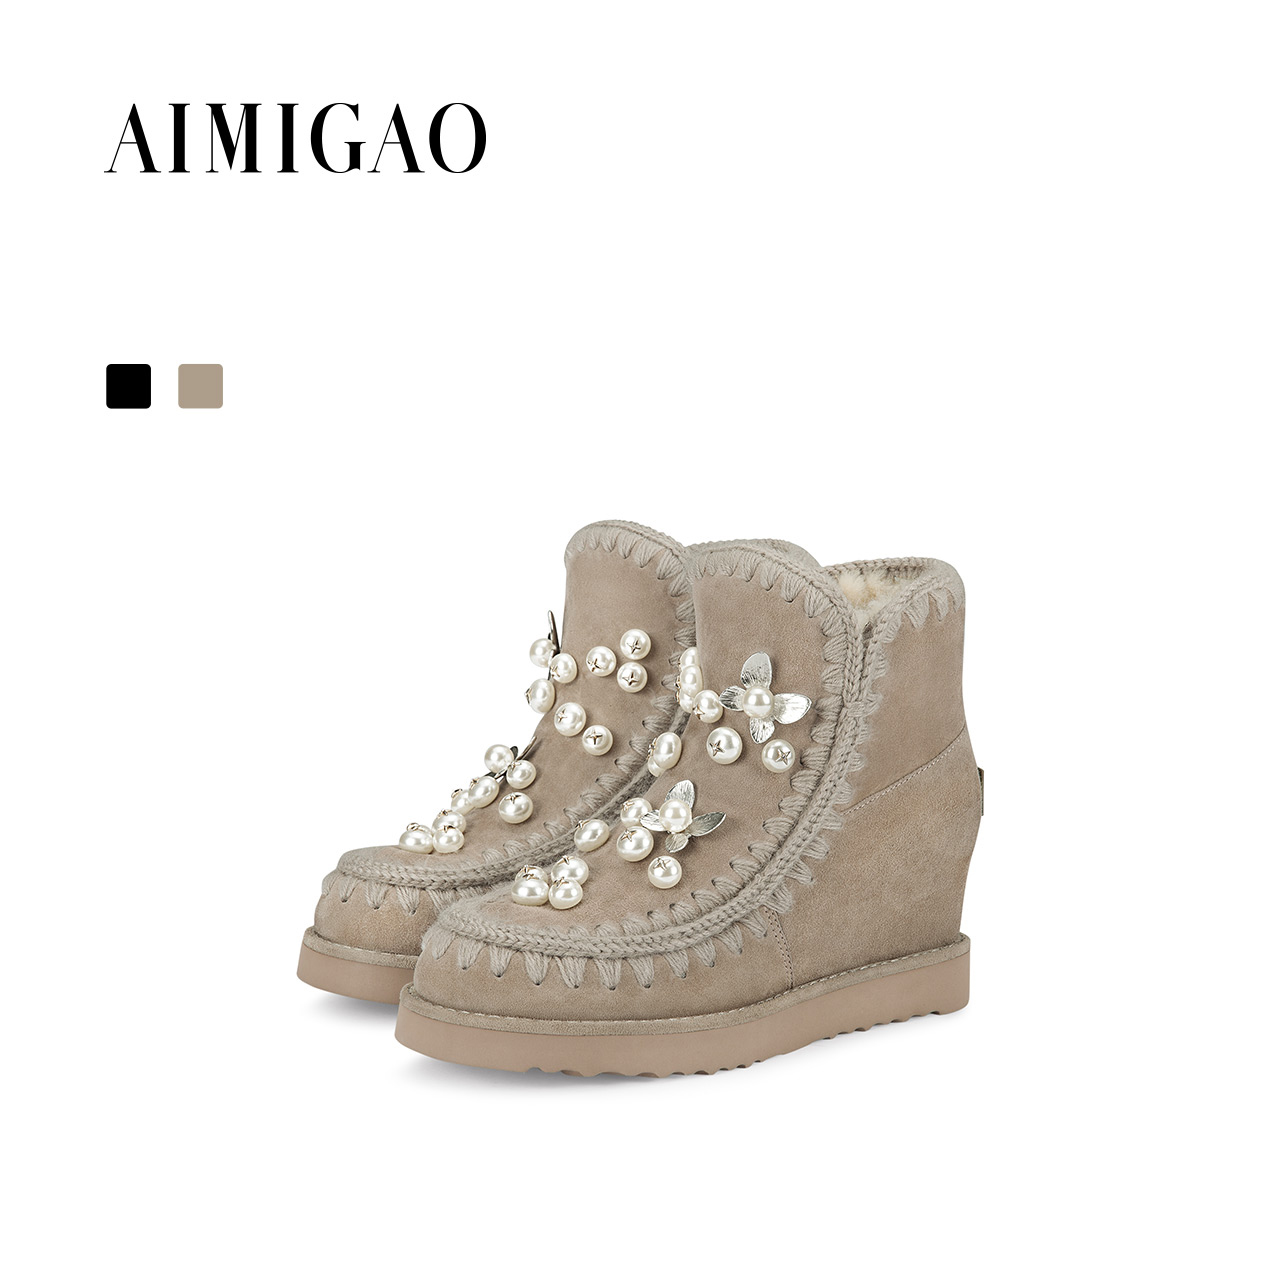 AIMIGAO Suede leather Women winter snow boots 100% Natural Wool Fur 2017new round toe height increased fashion ankle boots women